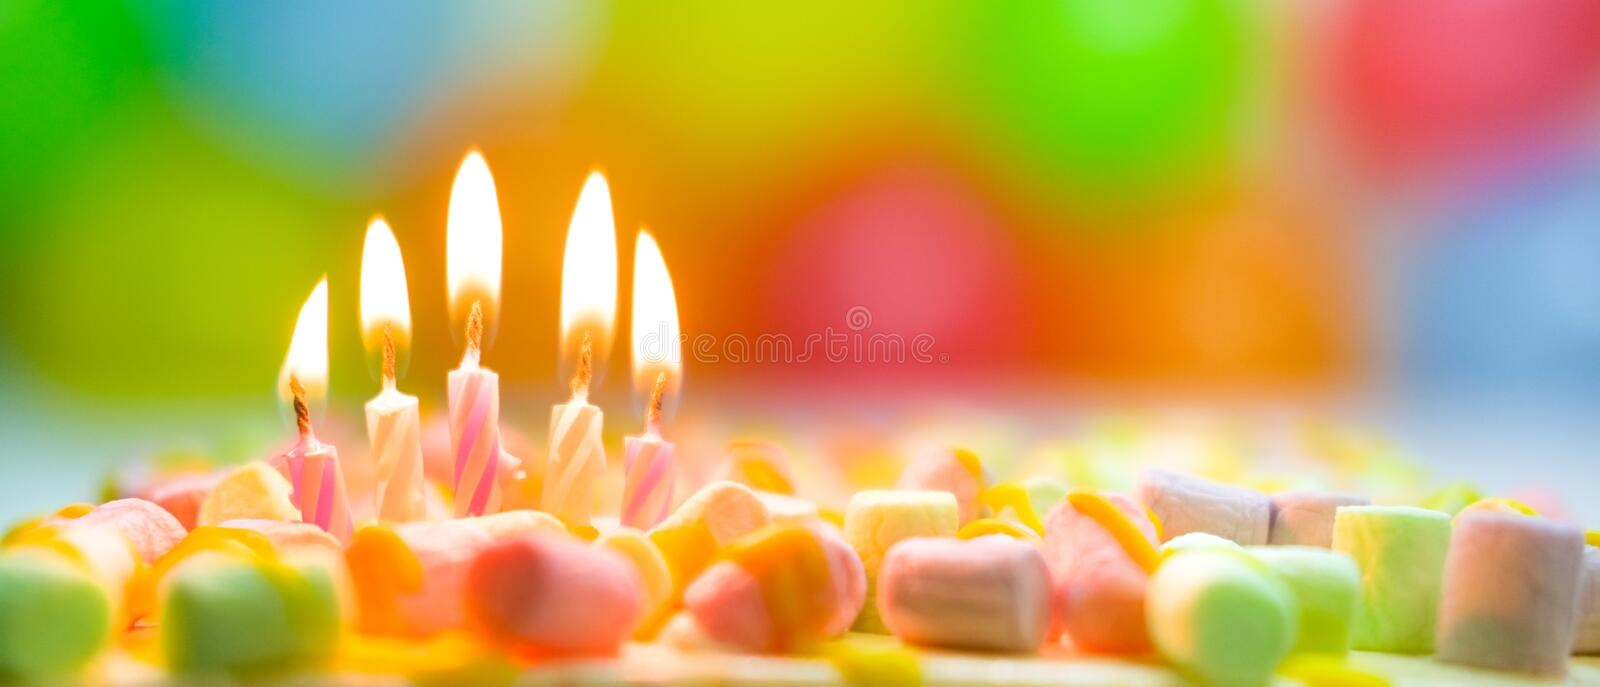 Festive colorful birthday banner with five burning candles on the cake and colorful balloons on background. Space for. Congratulatory text stock photos